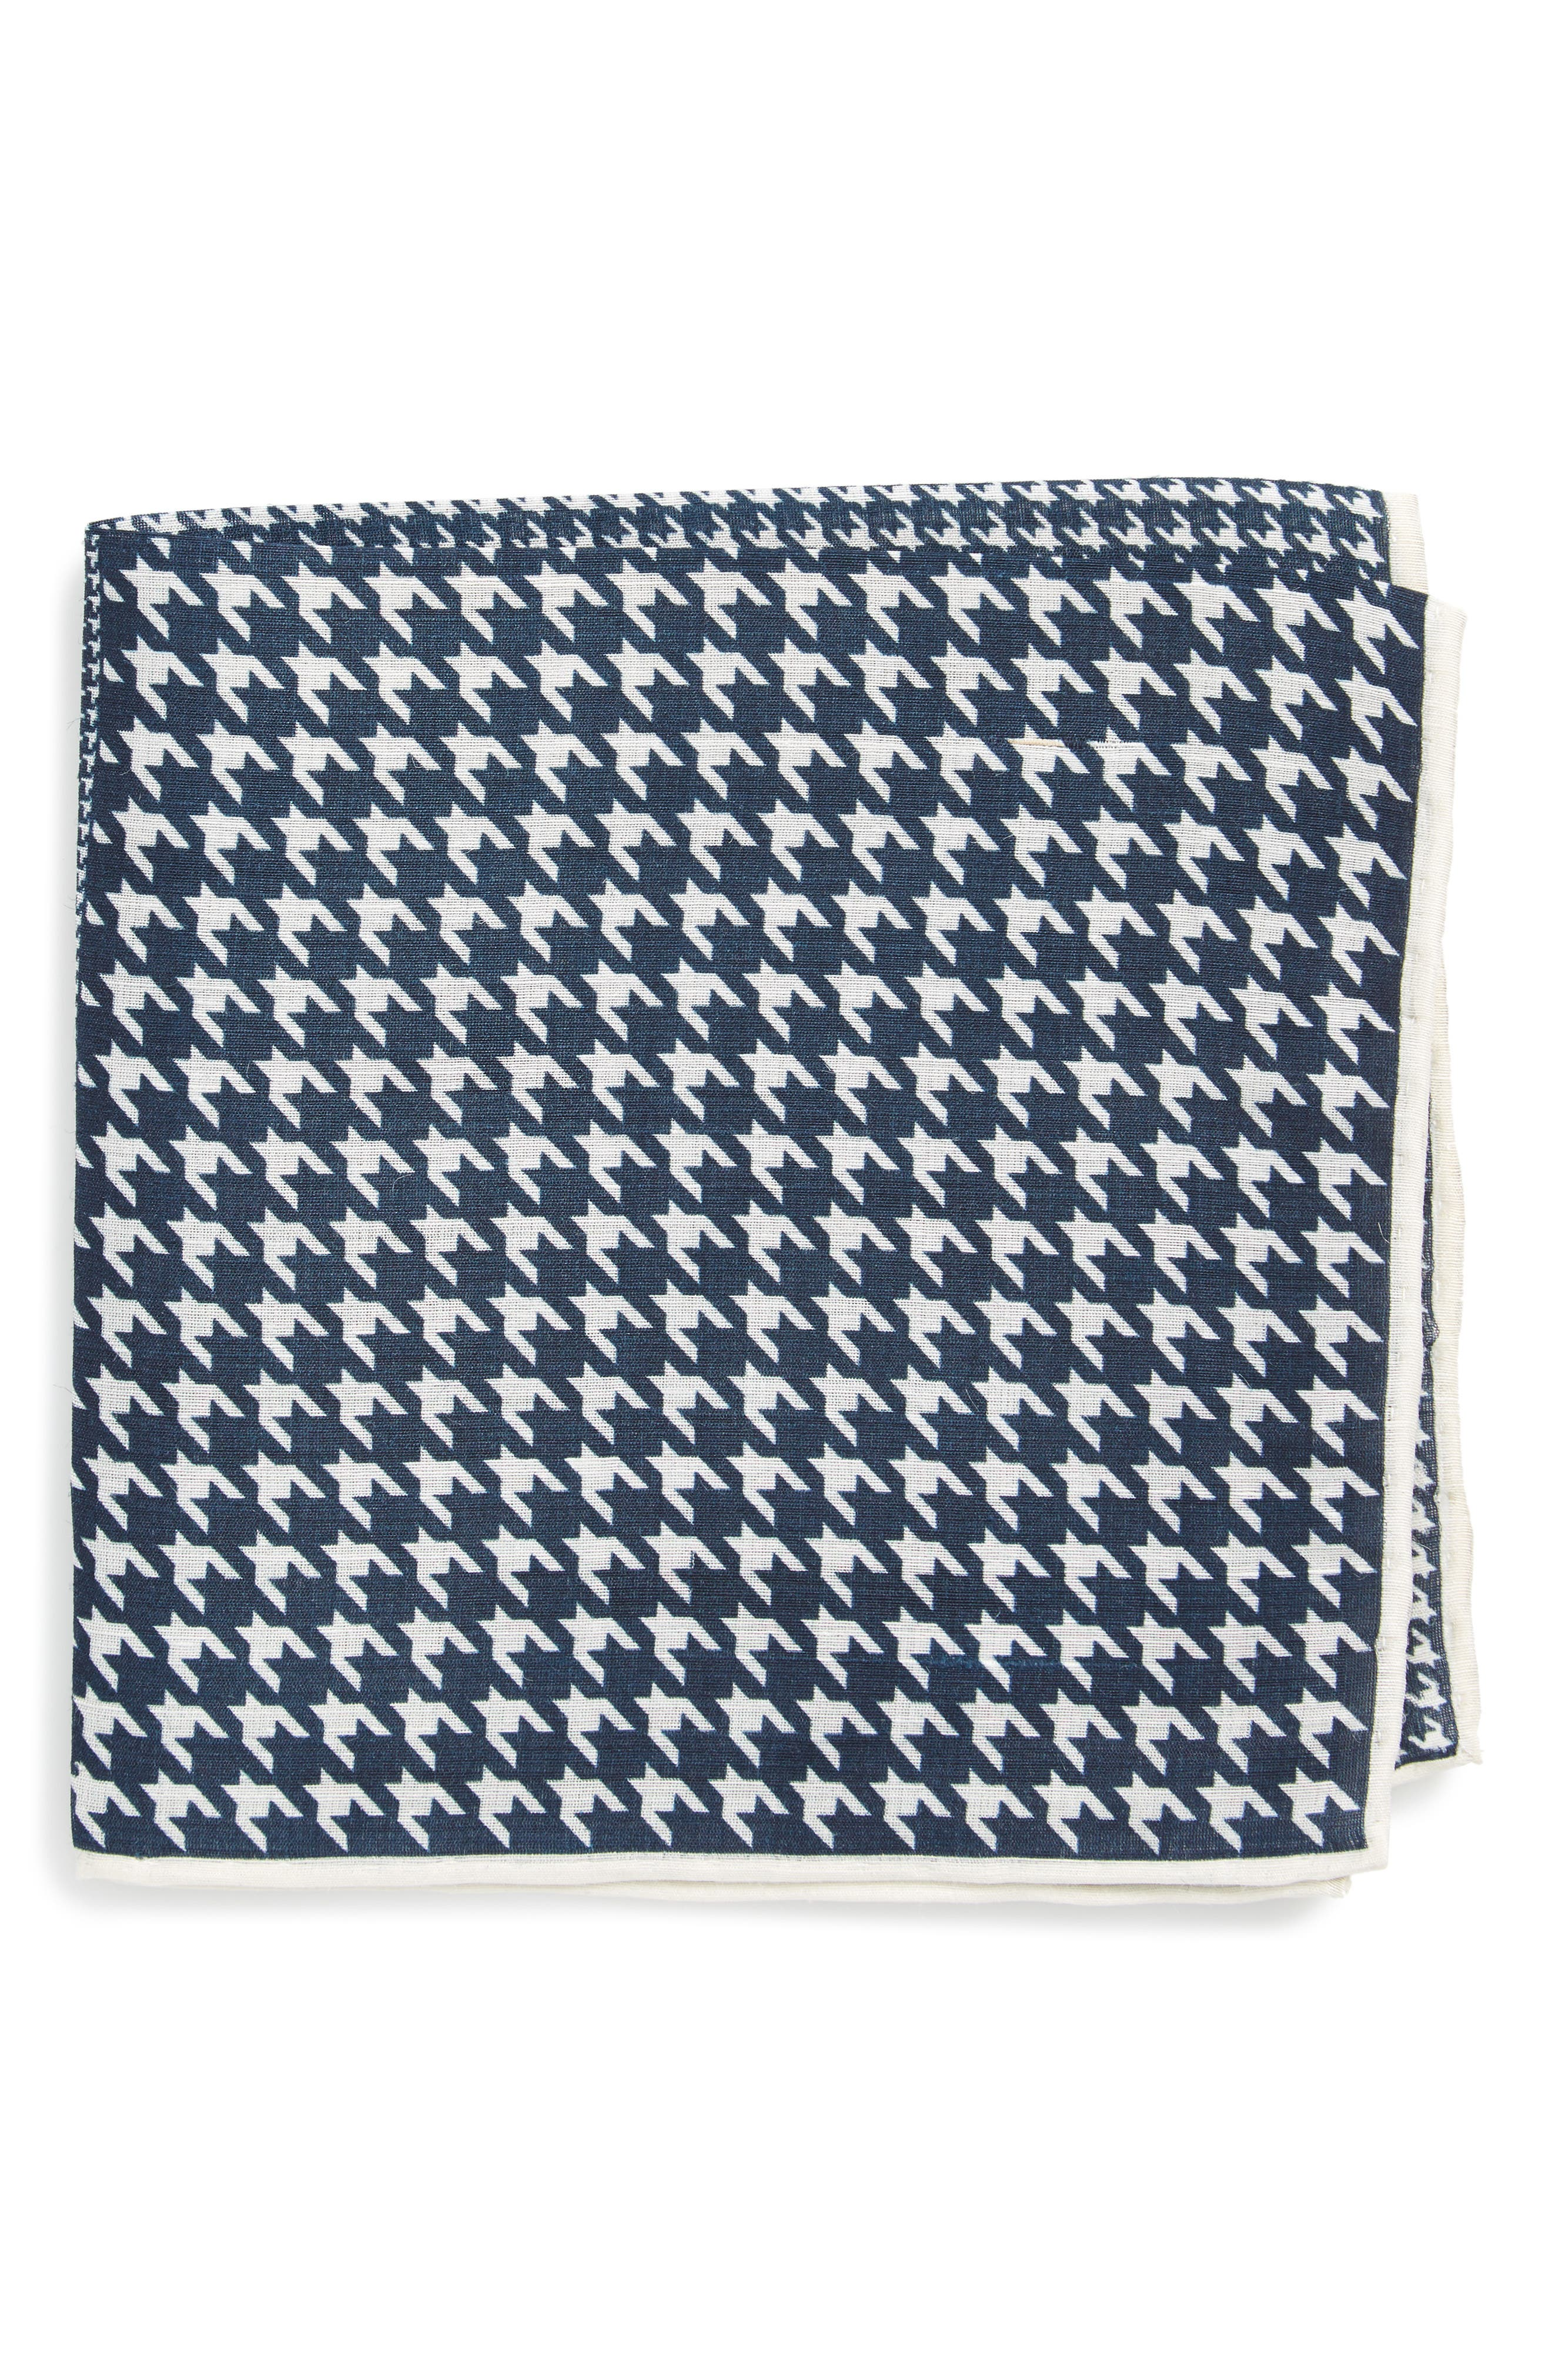 Main Image - The Tie Bar Houndstooth Pocket Square